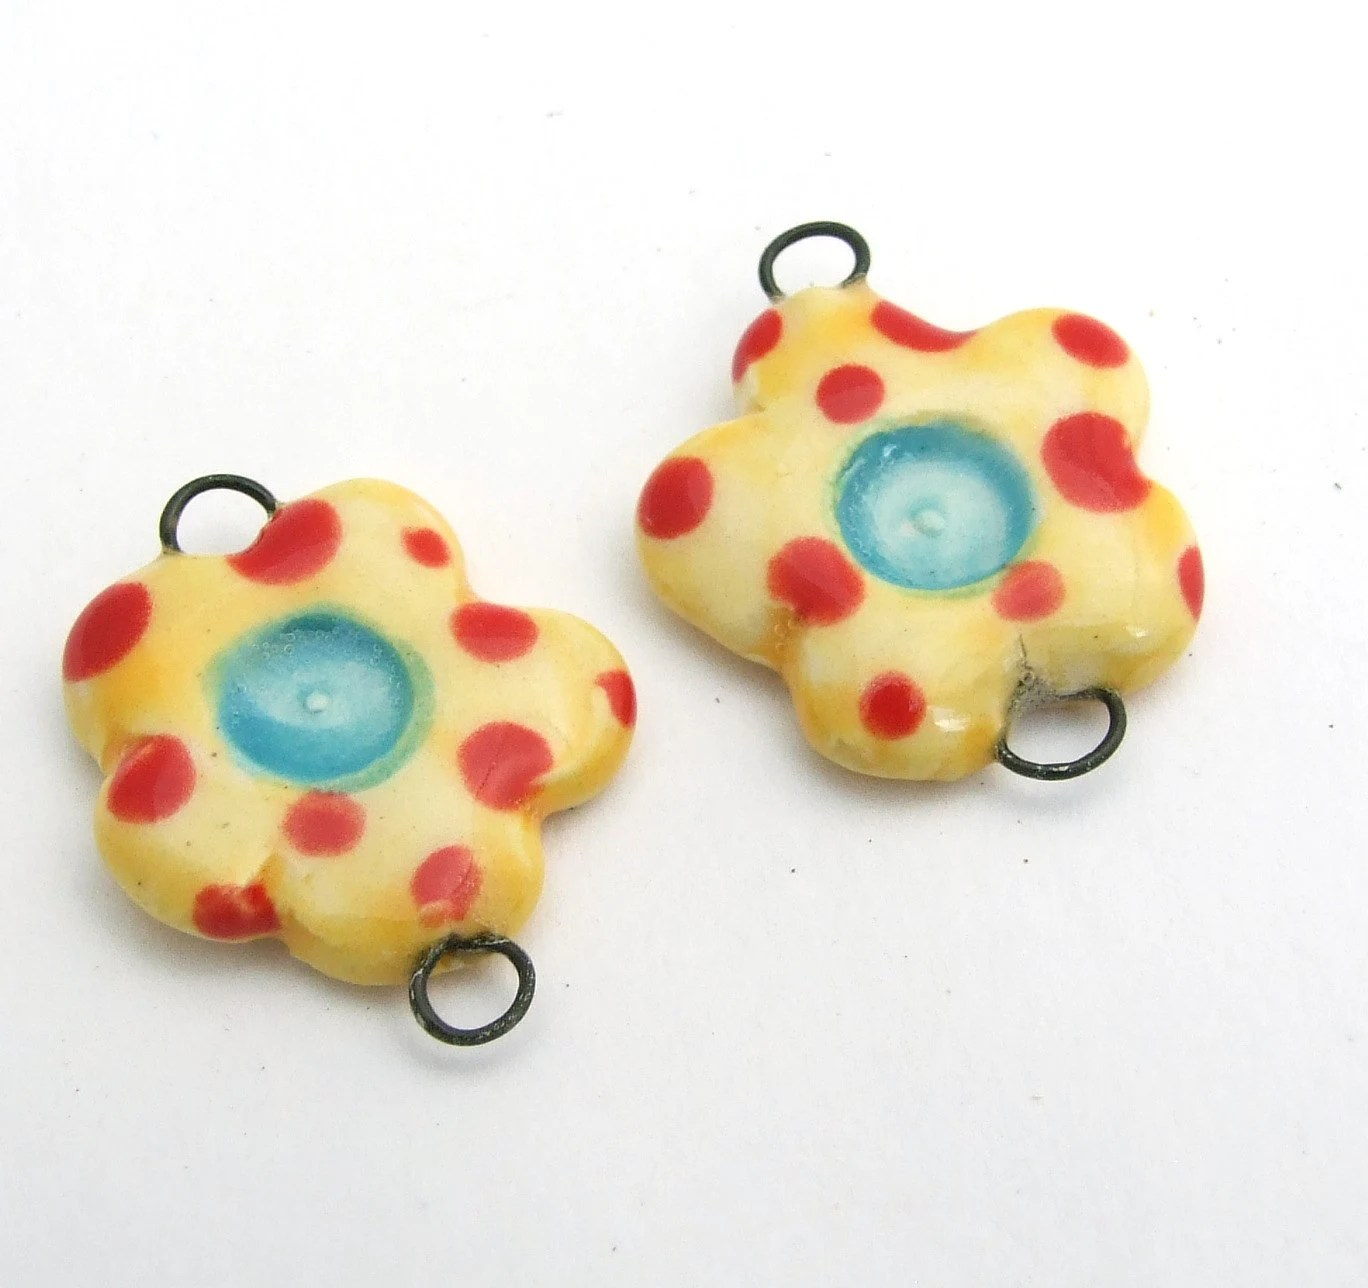 Itty Bitty Ceramic Flower Links, Set of 2